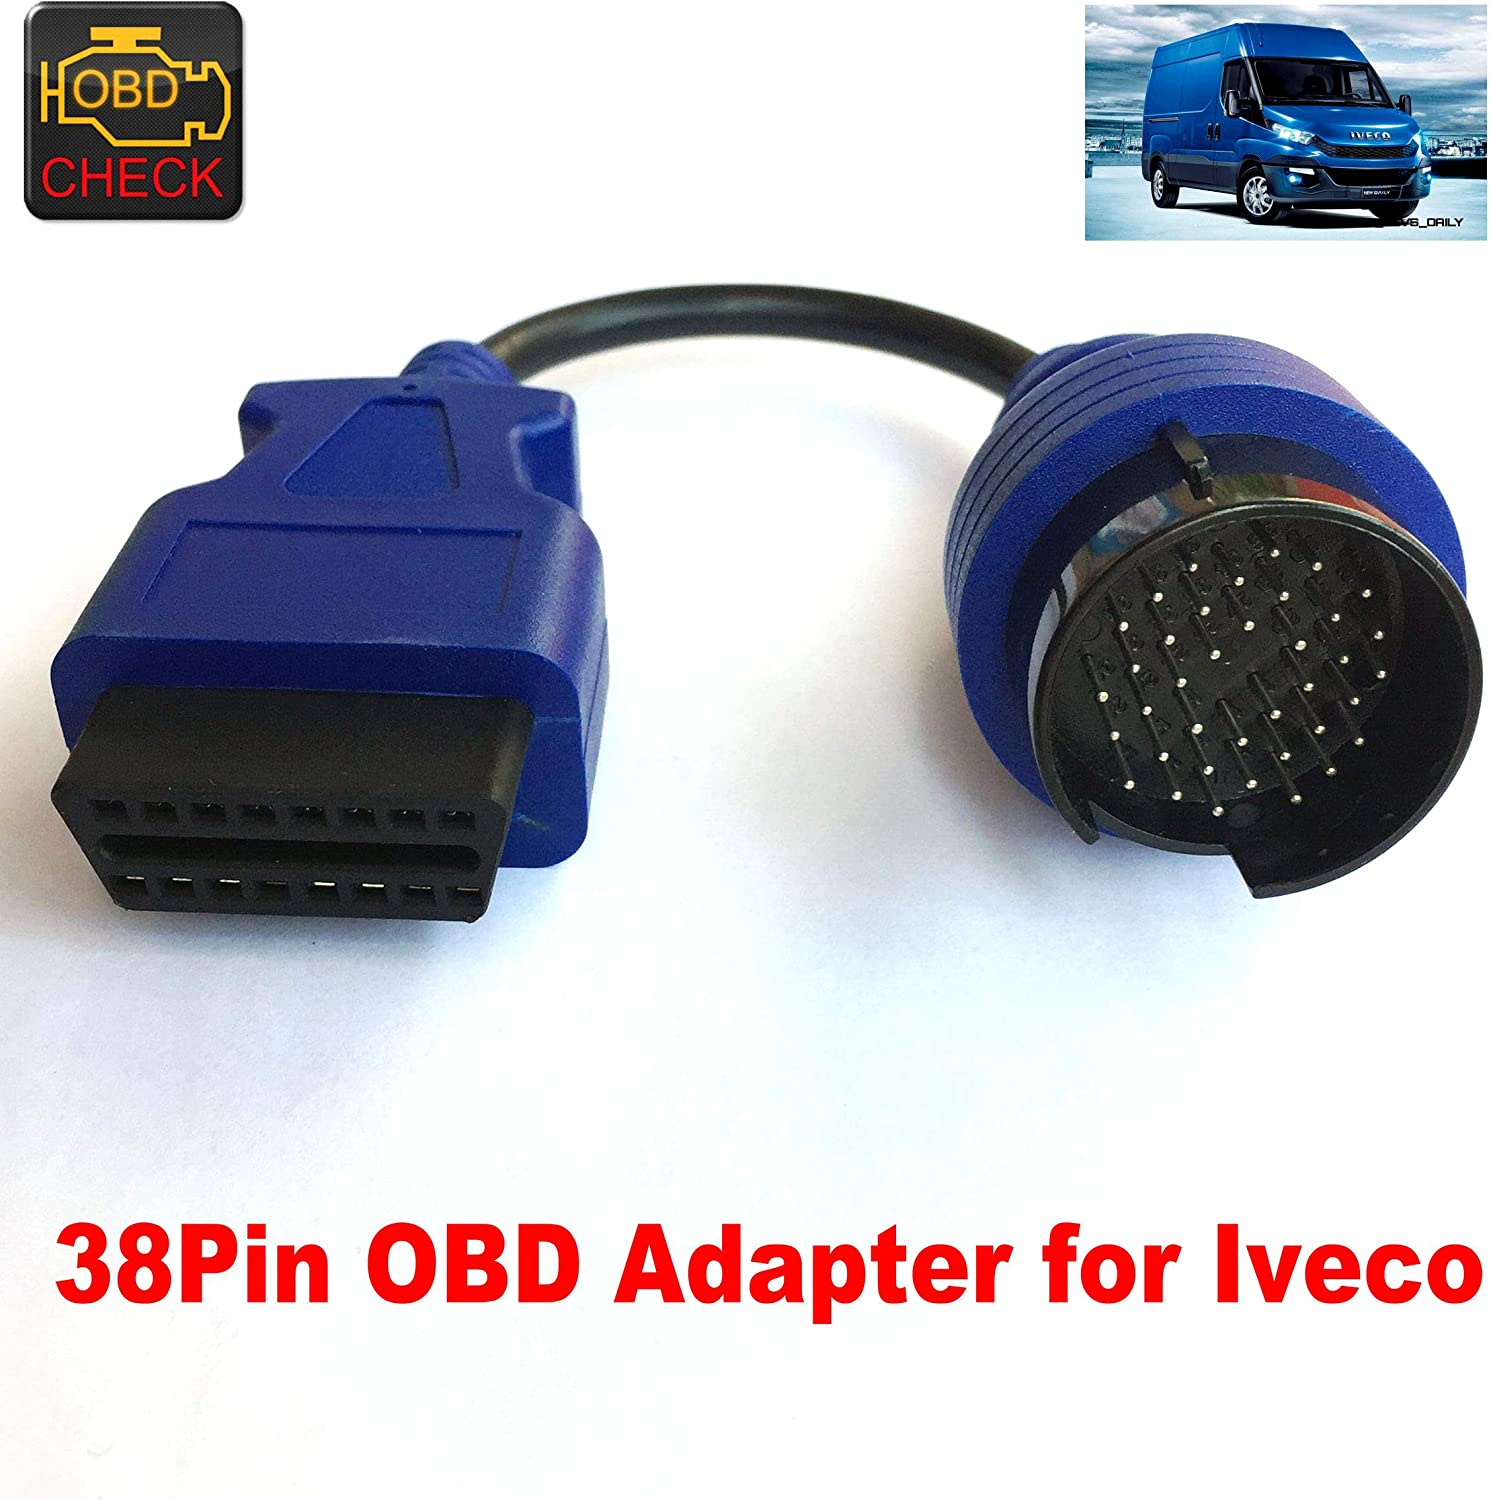 38Pin OBD Adapter to 16Pin OBDII Cable for I-v-e-c-o Truck Diagnostic Connector